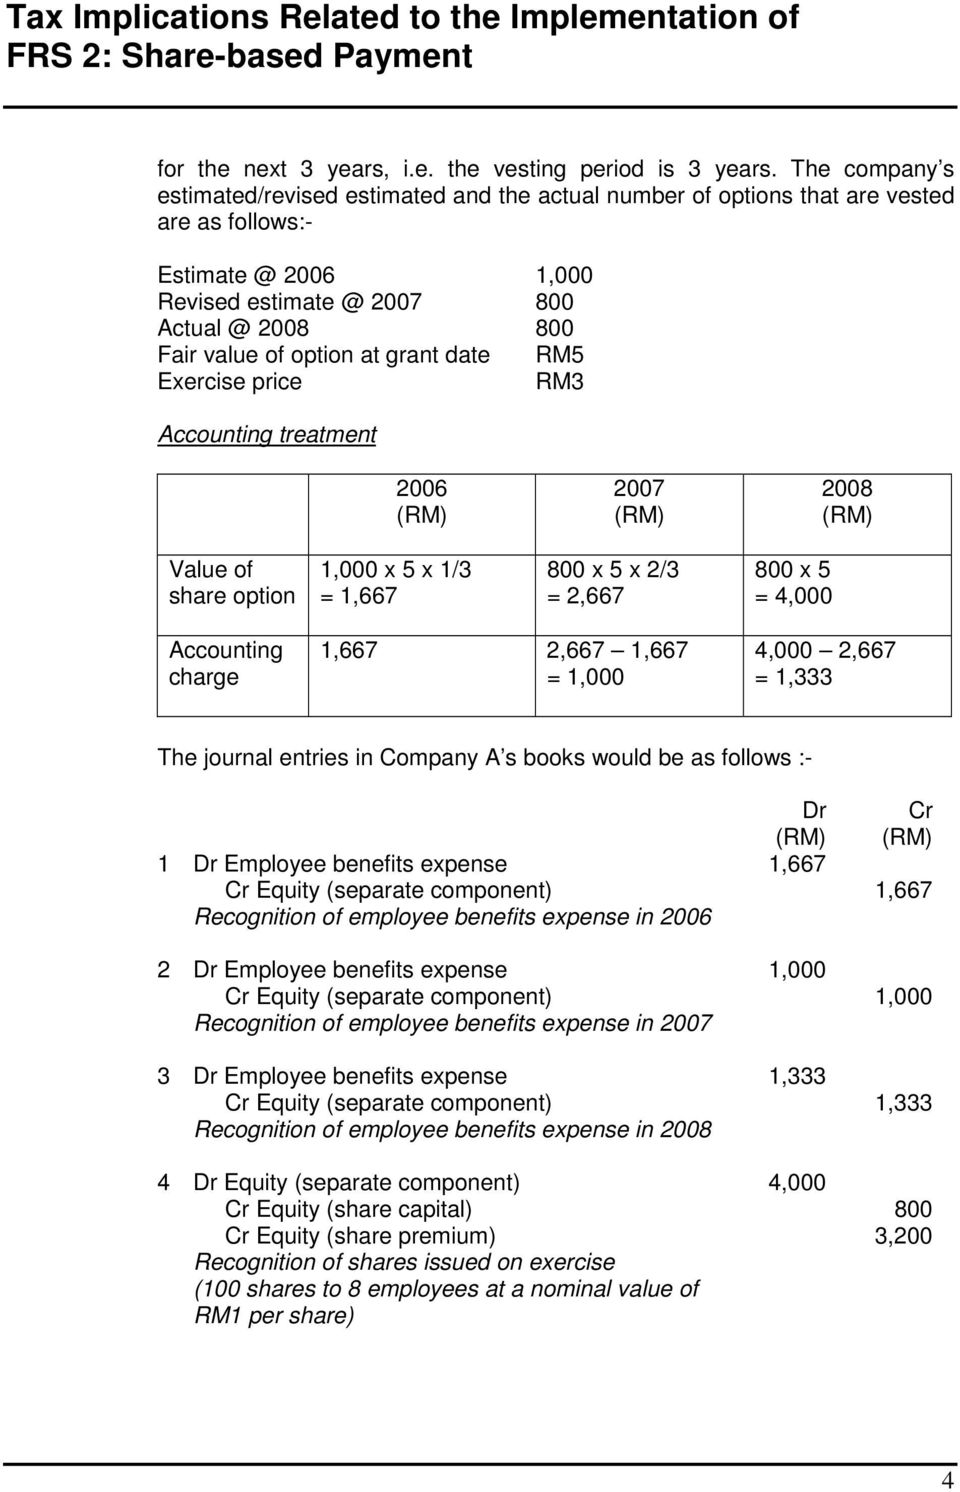 date RM5 Exercise price RM3 Accounting treatment 2006 2007 2008 Value of share option x 5 x 1/3 = 800 x 5 x 2/3 = 2,667 800 x 5 = Accounting charge 2,667 = 2,667 = The journal entries in Company A s